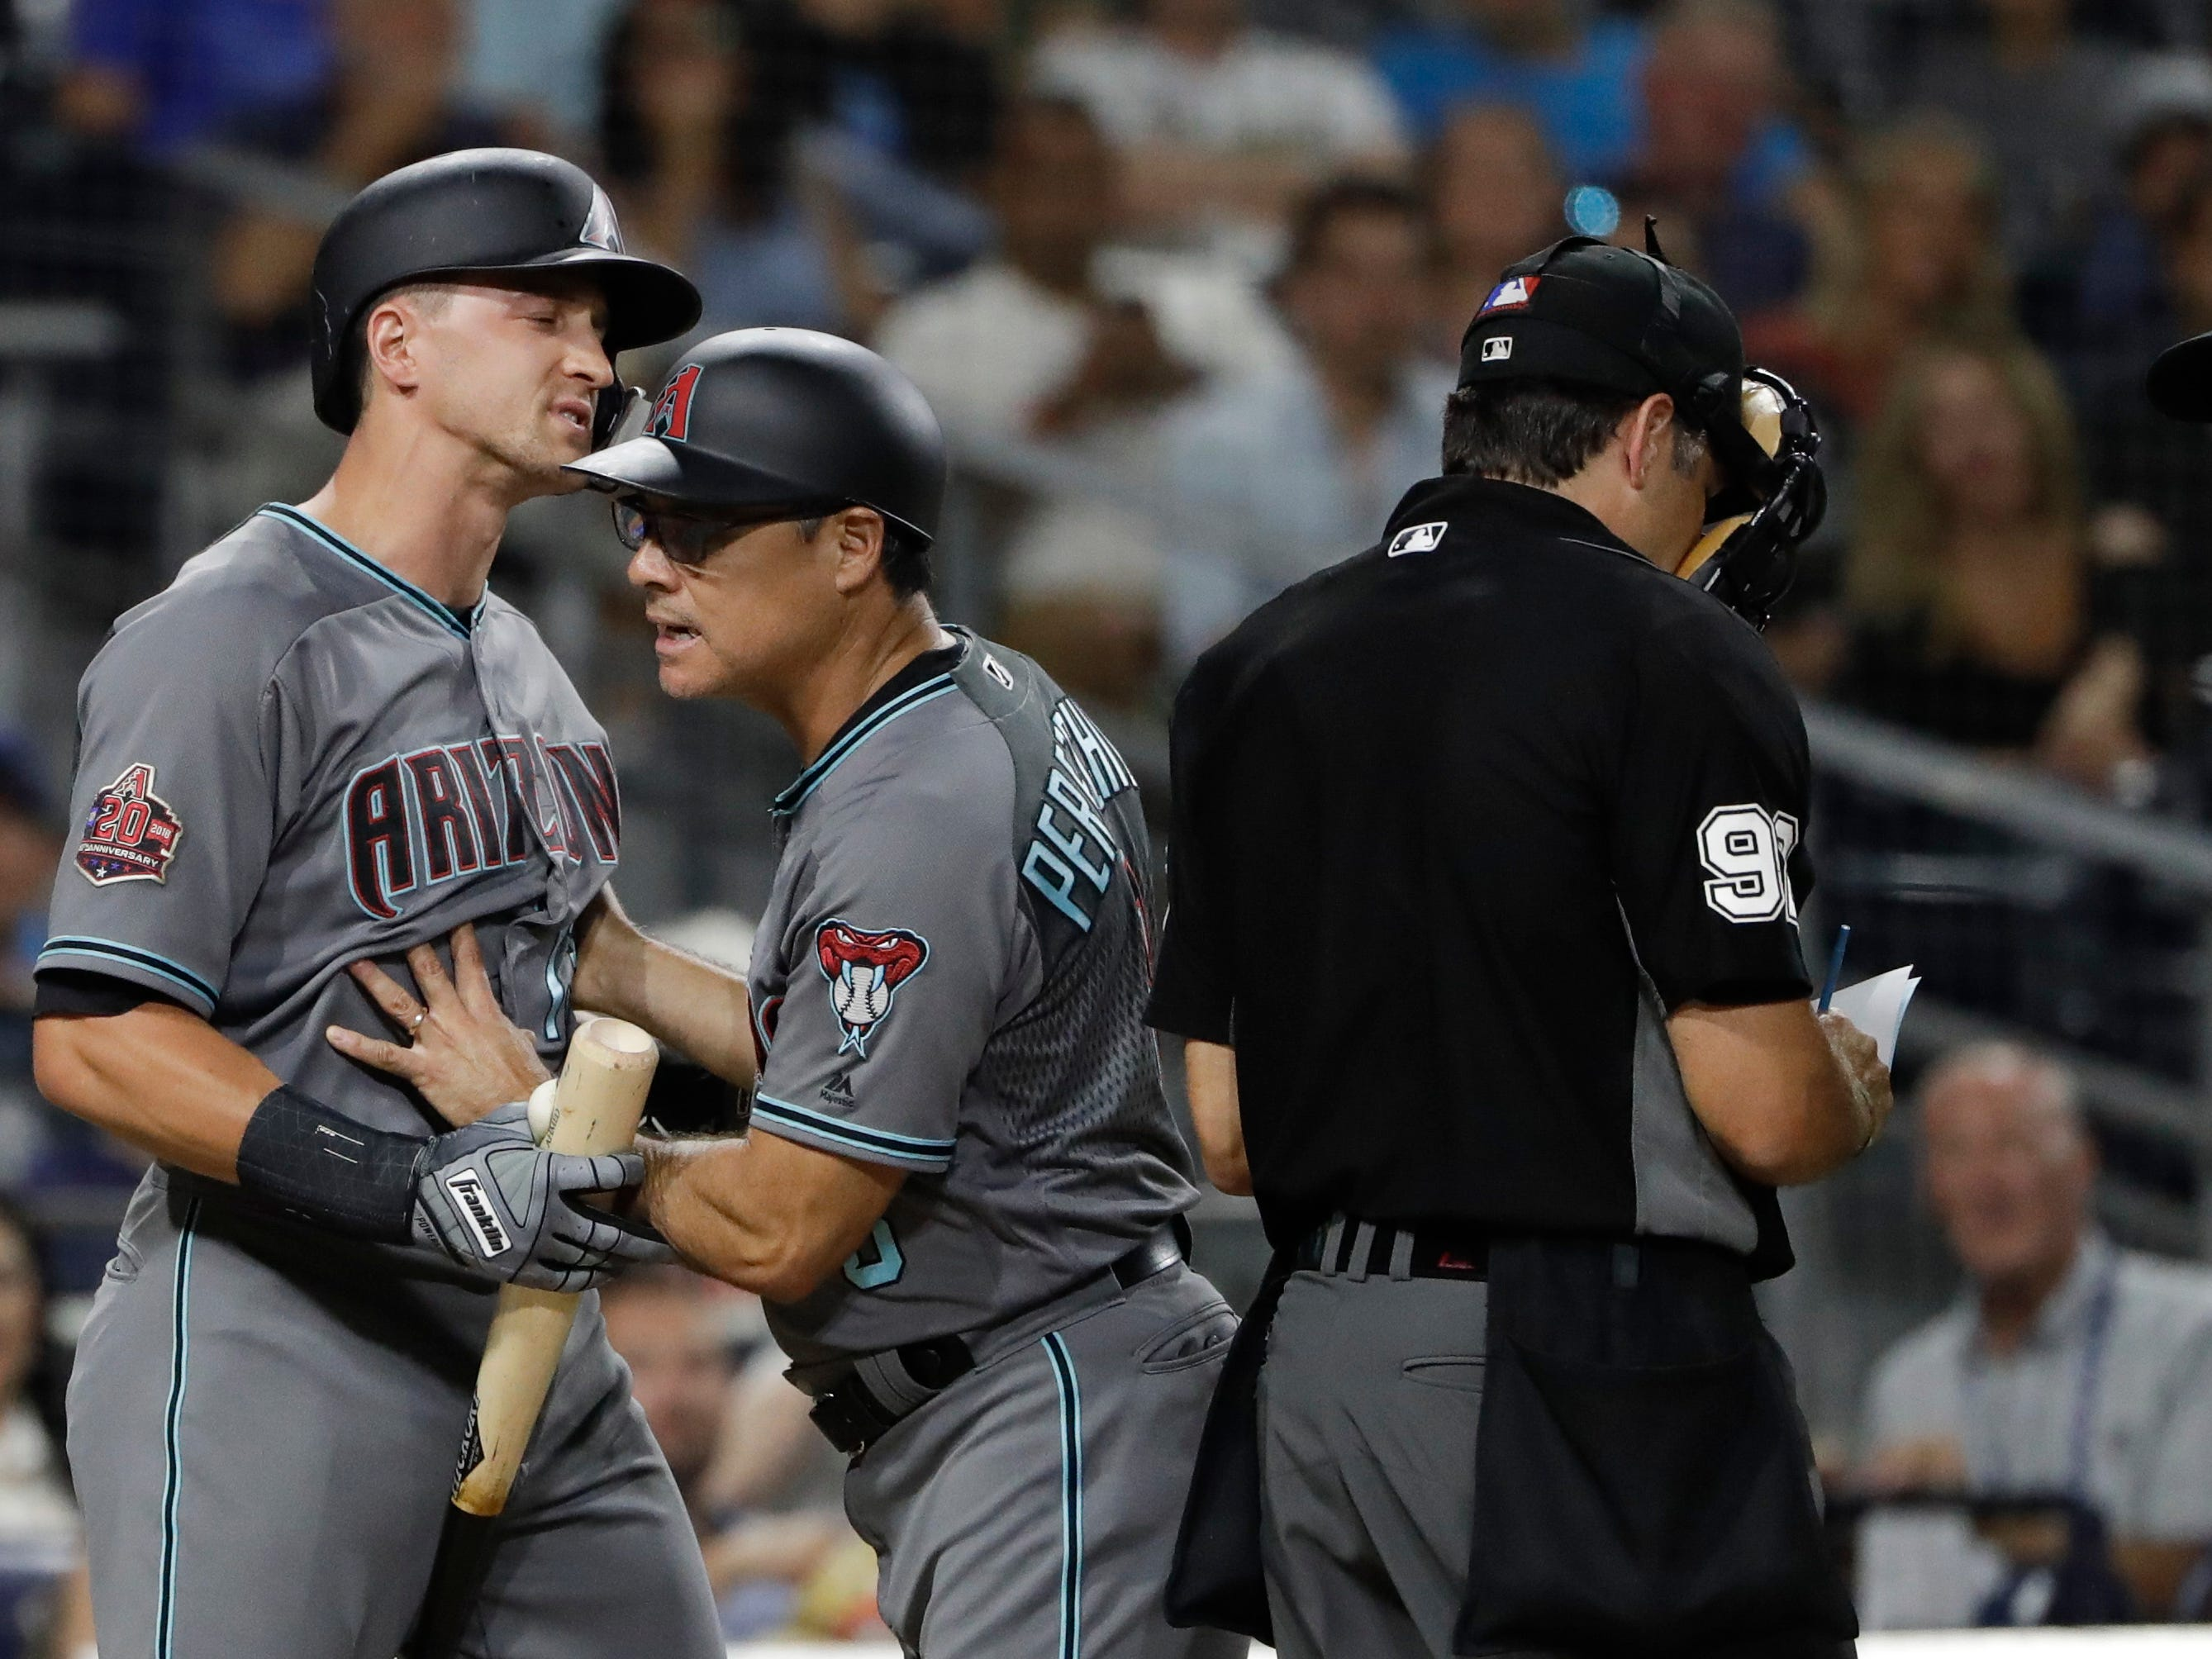 Arizona Diamondbacks' Nick Ahmed, left, is held back by third base coach Tony Perezchica, center, as he argues with umpire James Hoye during the third inning of a baseball game against the San Diego Padres Friday, Aug. 17, 2018, in San Diego.